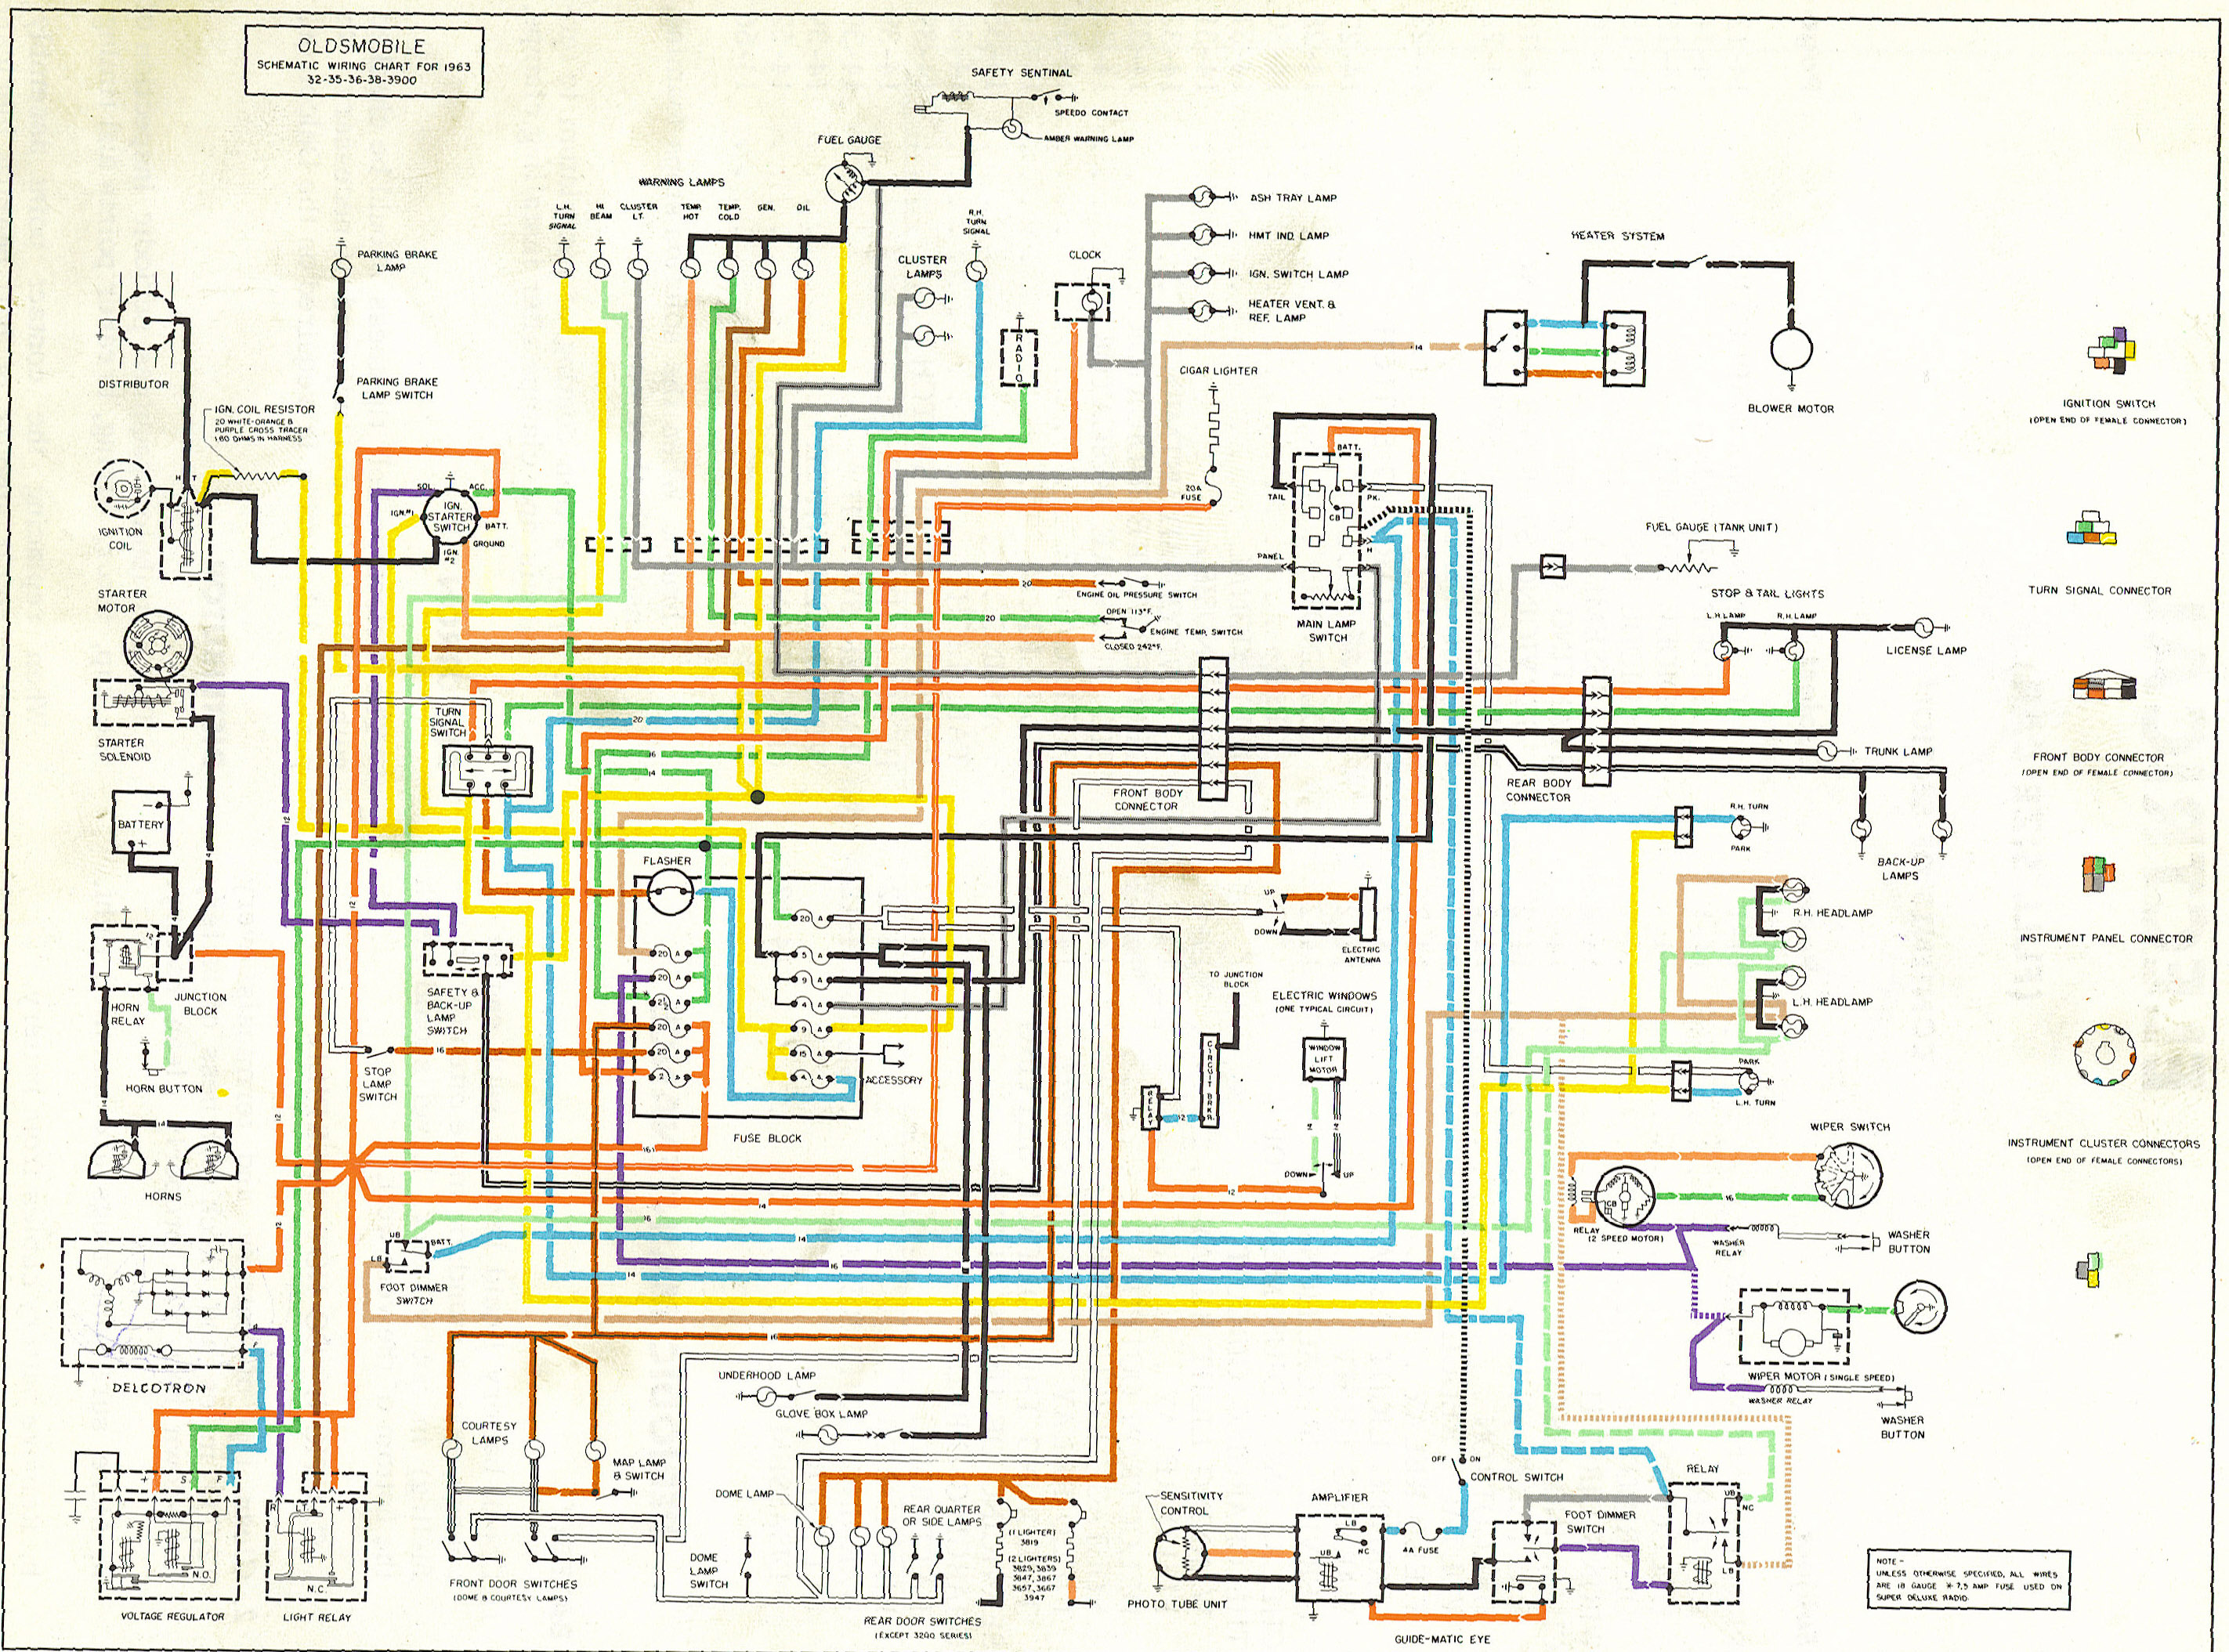 Wiring Diagram For 1969 Data Schema Roadrunner Cutlass Enthusiast Diagrams U2022 Rh Rasalibre Co Charger